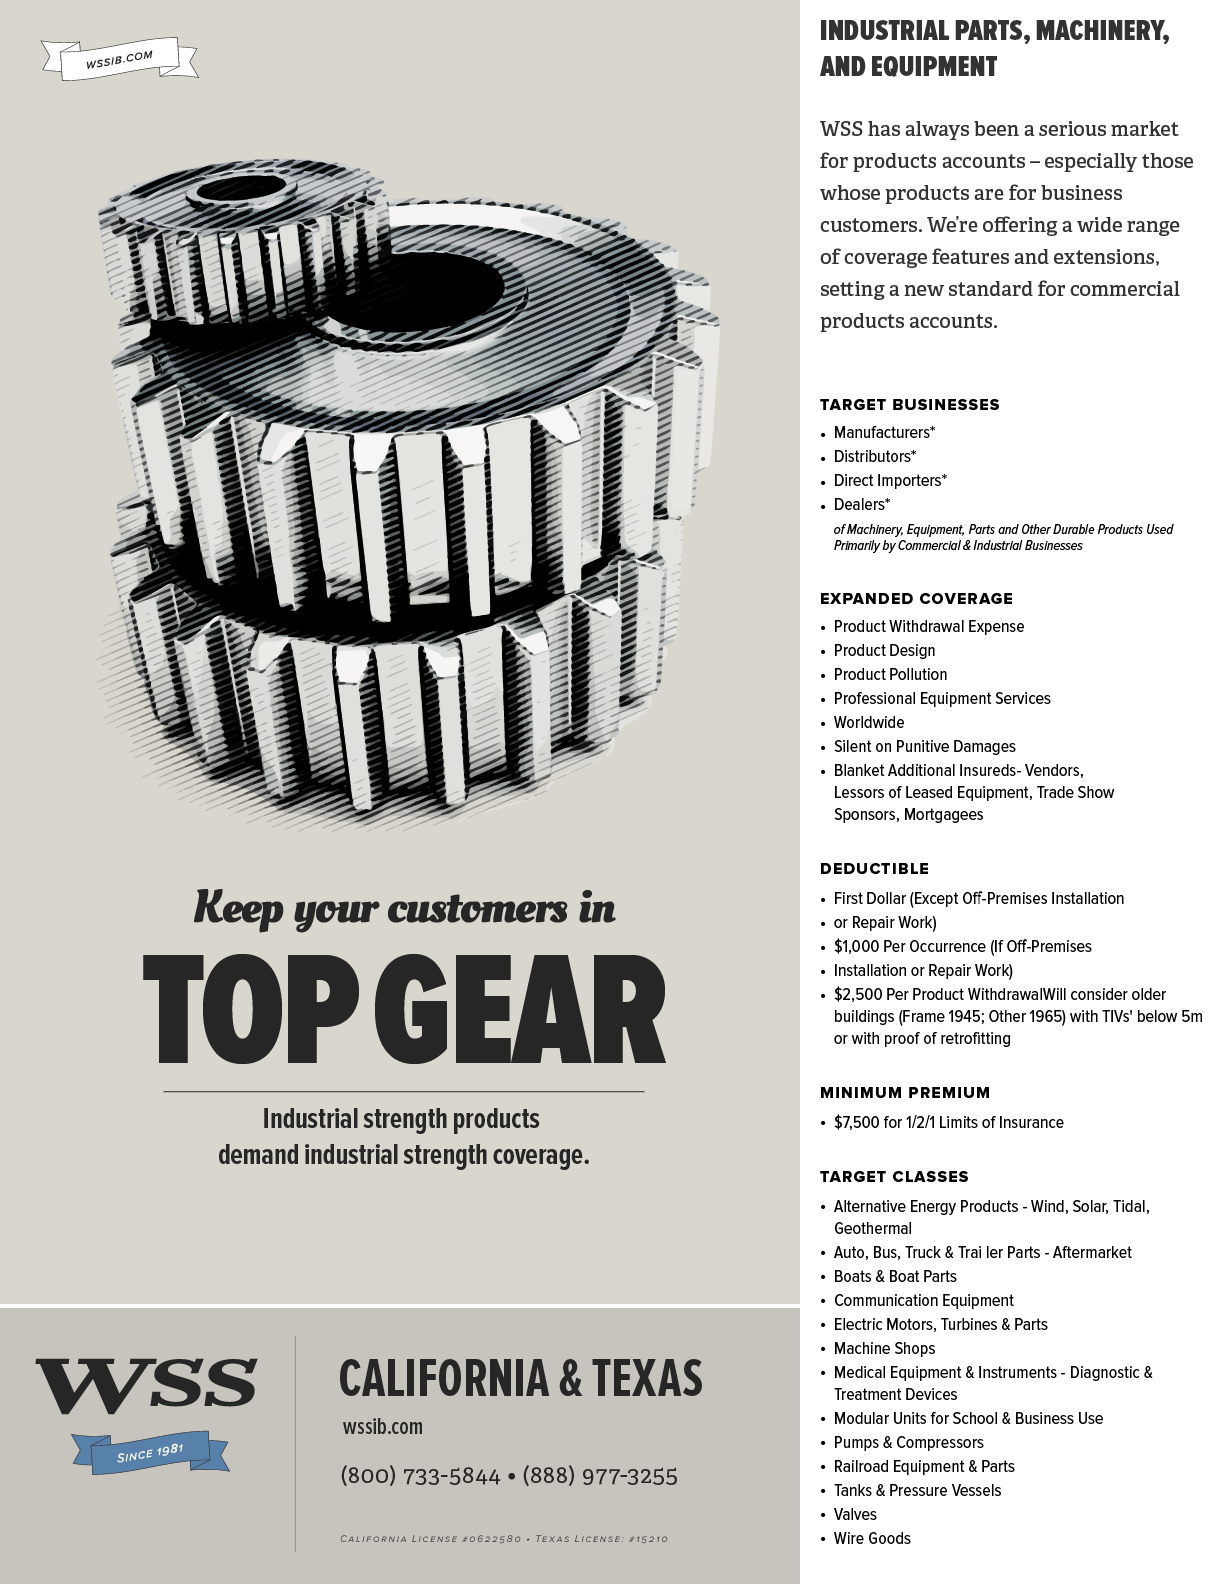 WSS-Flyer-IndustrialProductLiab.png